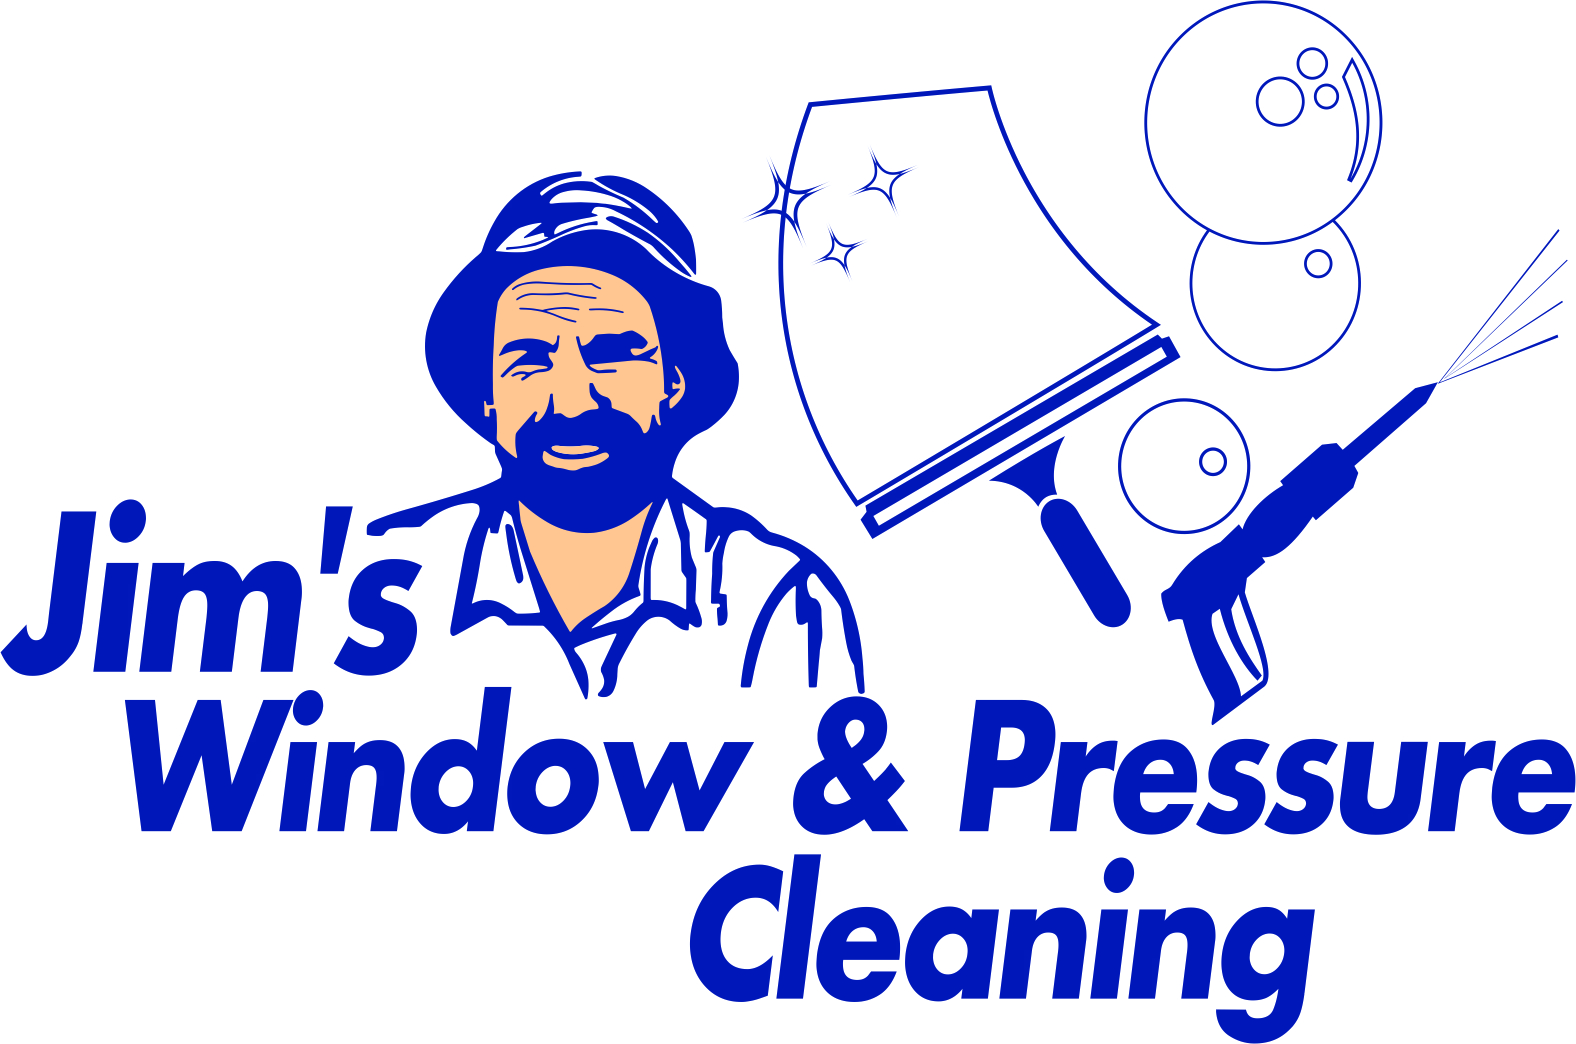 Jim's Window & Pressure Cleaning Adelaide Bedford Park SPECIAL $24,999-Limited